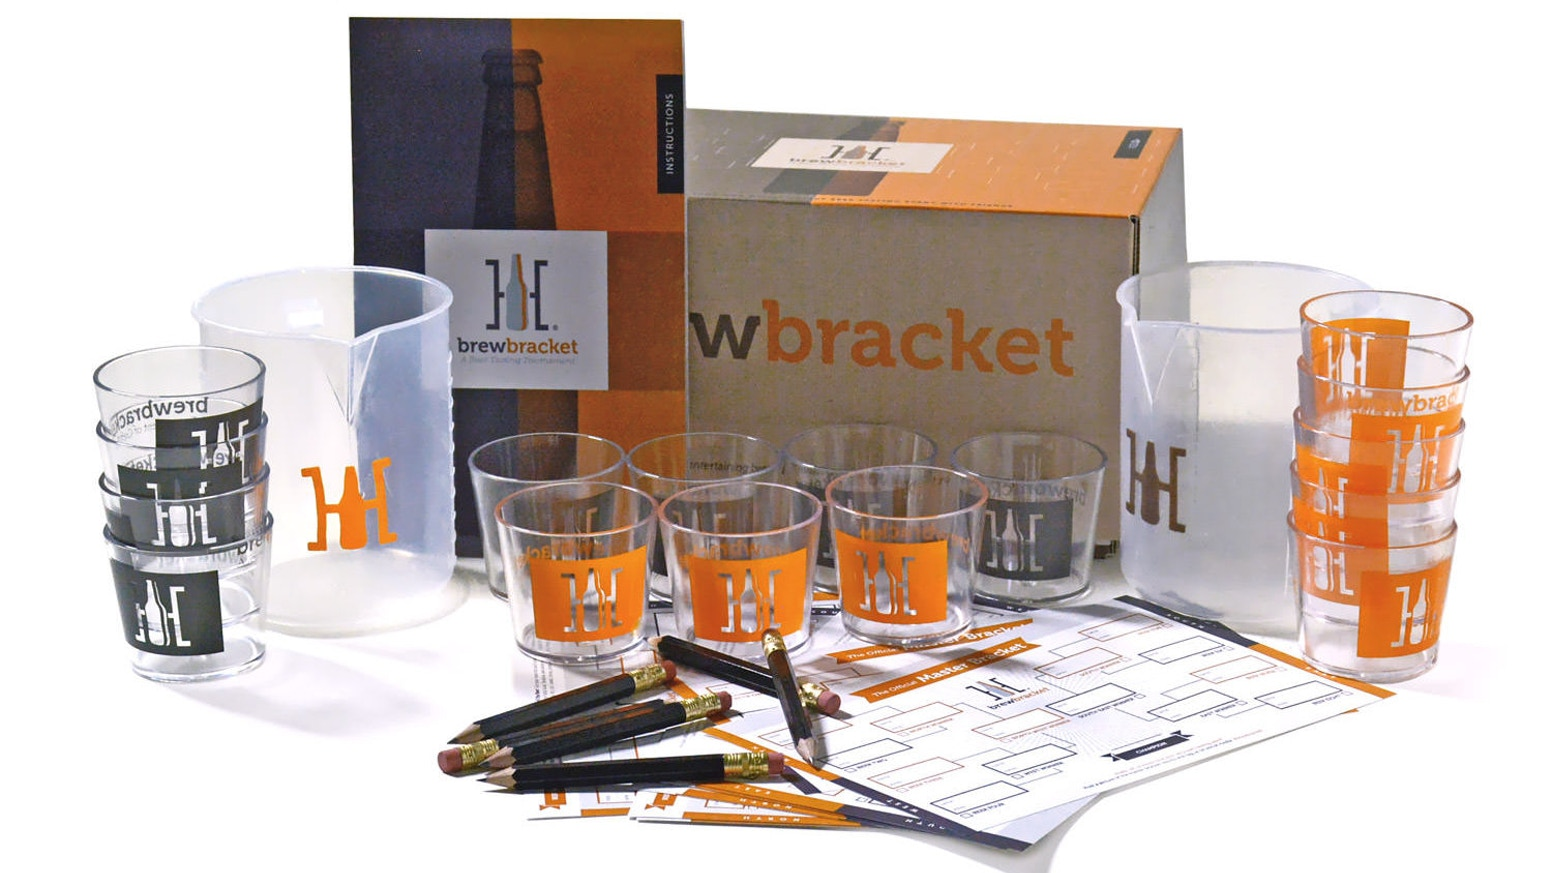 Brew Bracket is a beer tasting party in a box. Get all you need to compare 8 beers in a head to head blind tournament with friends.